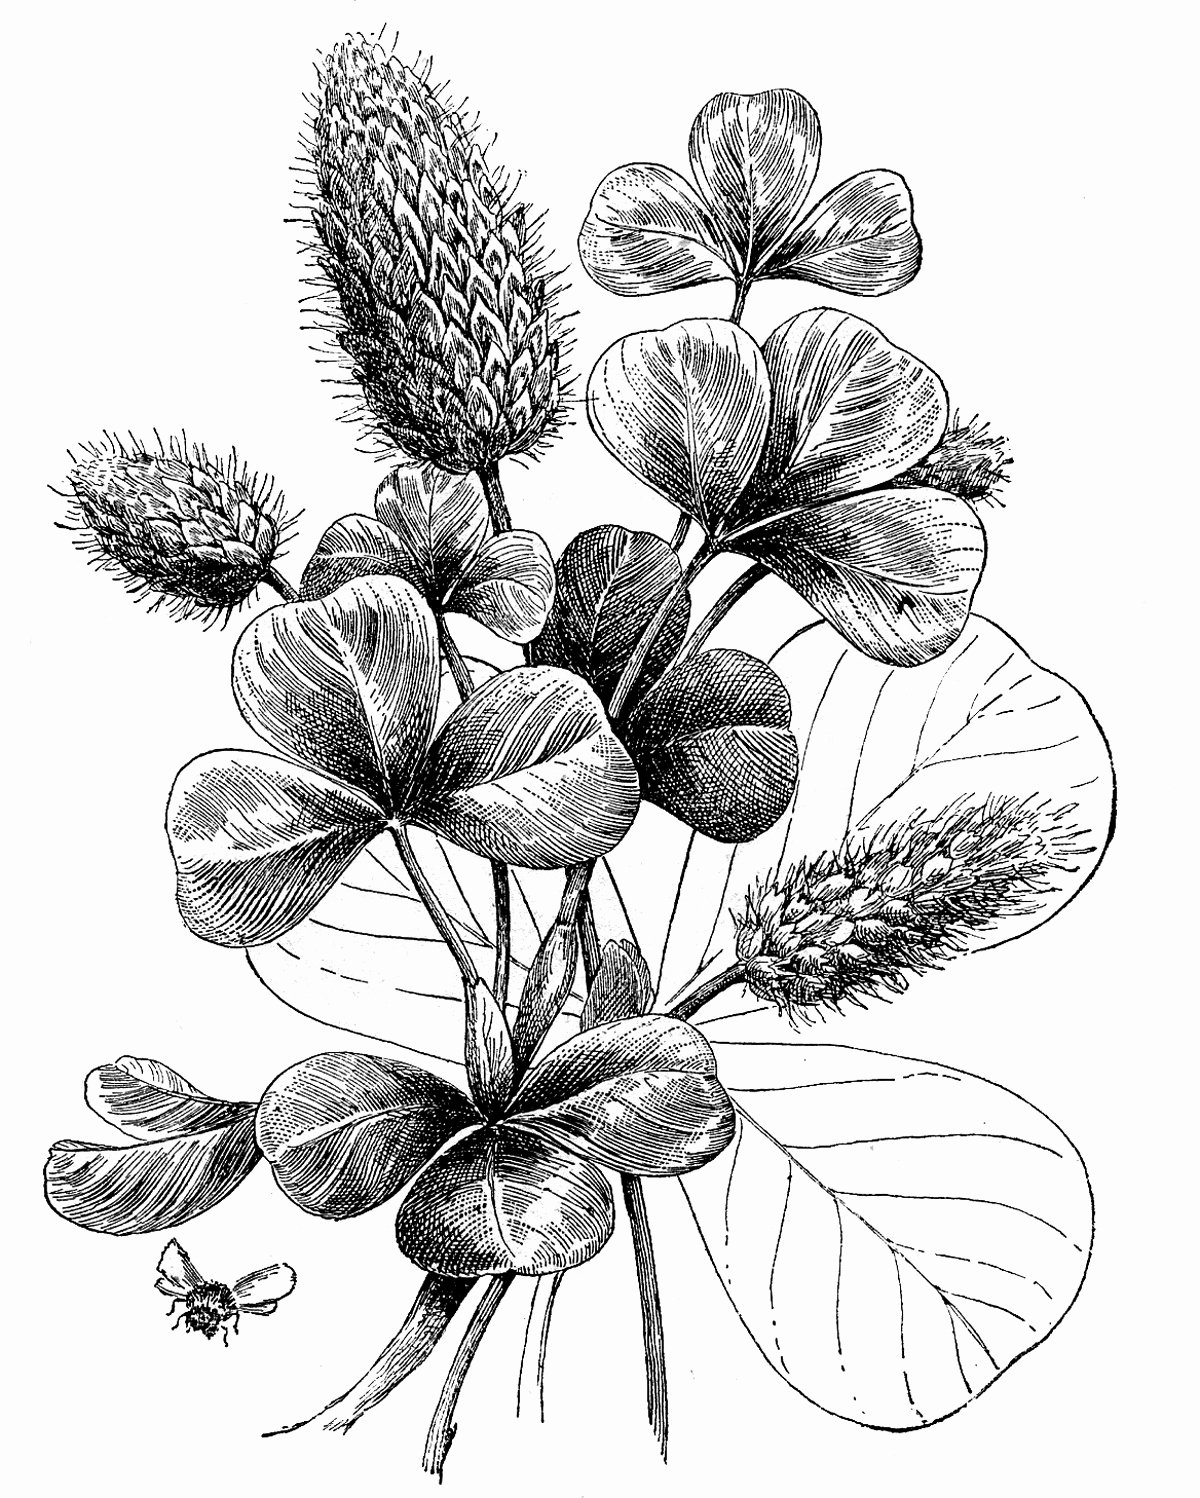 Black and White Flower Drawing Best Of Vintage Graphic Black and White Botanical Clover the Graphics Fairy